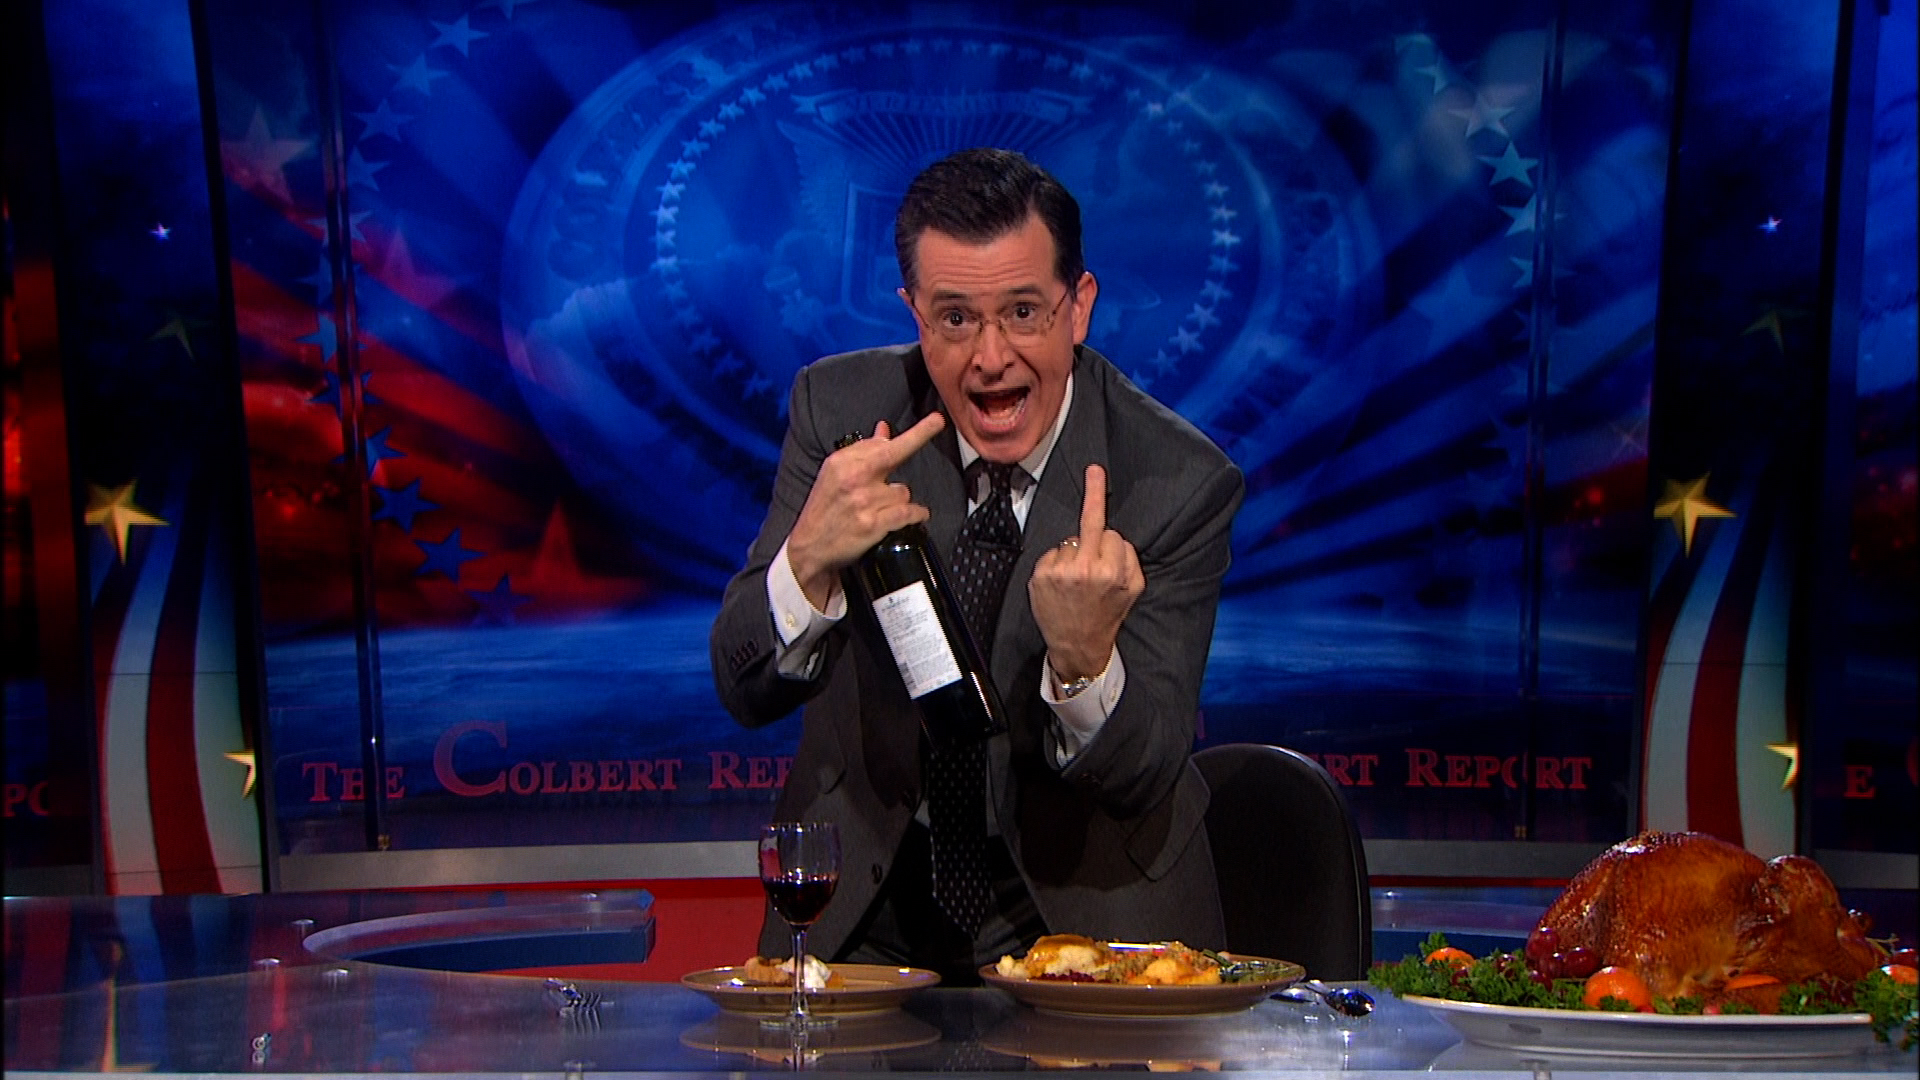 Stephen Colbert Wallpaper 15   1920 X 1080 stmednet 1920x1080